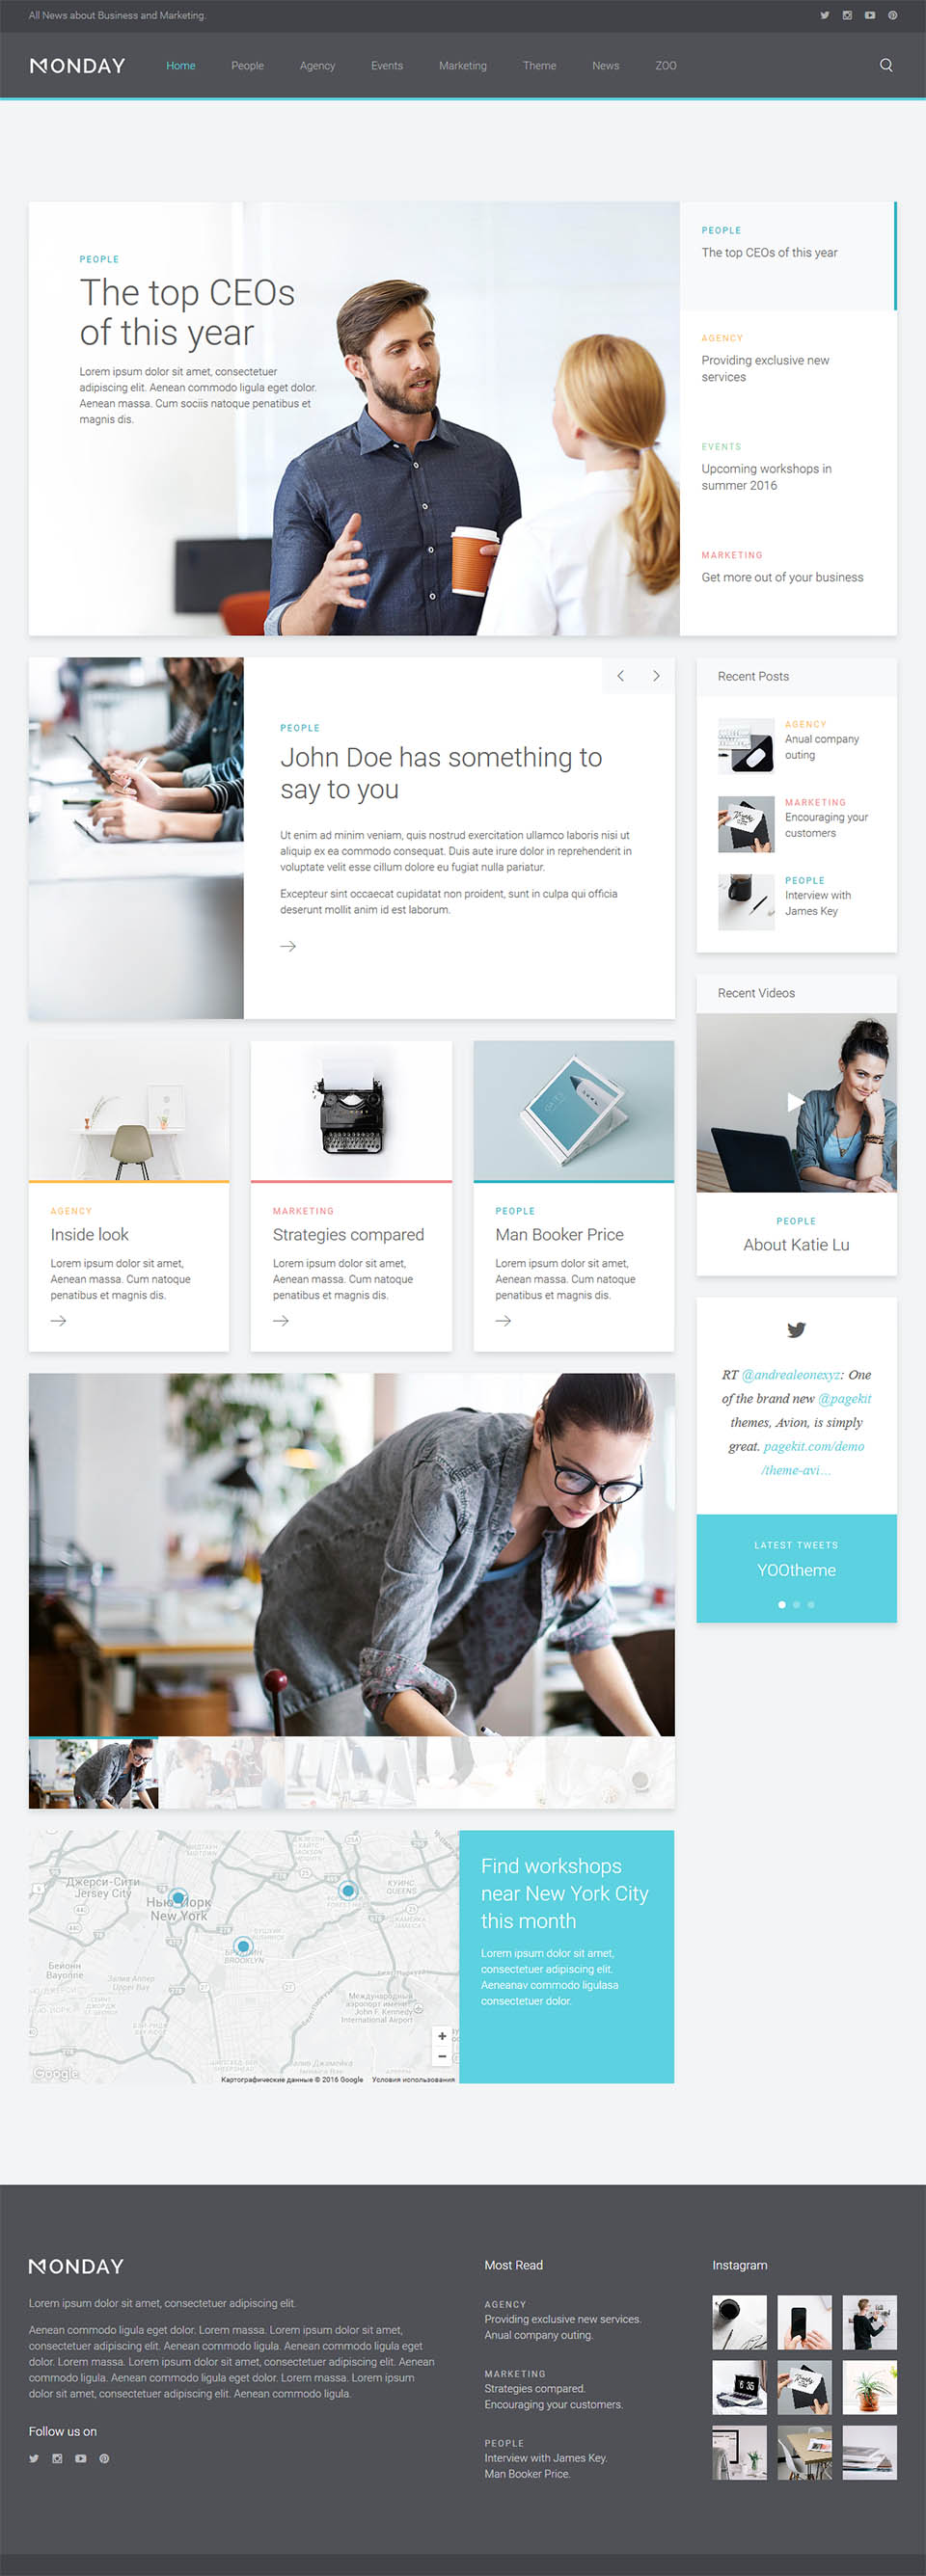 YOOtheme Monday v1.0.9 - business template for Joomla 3.7